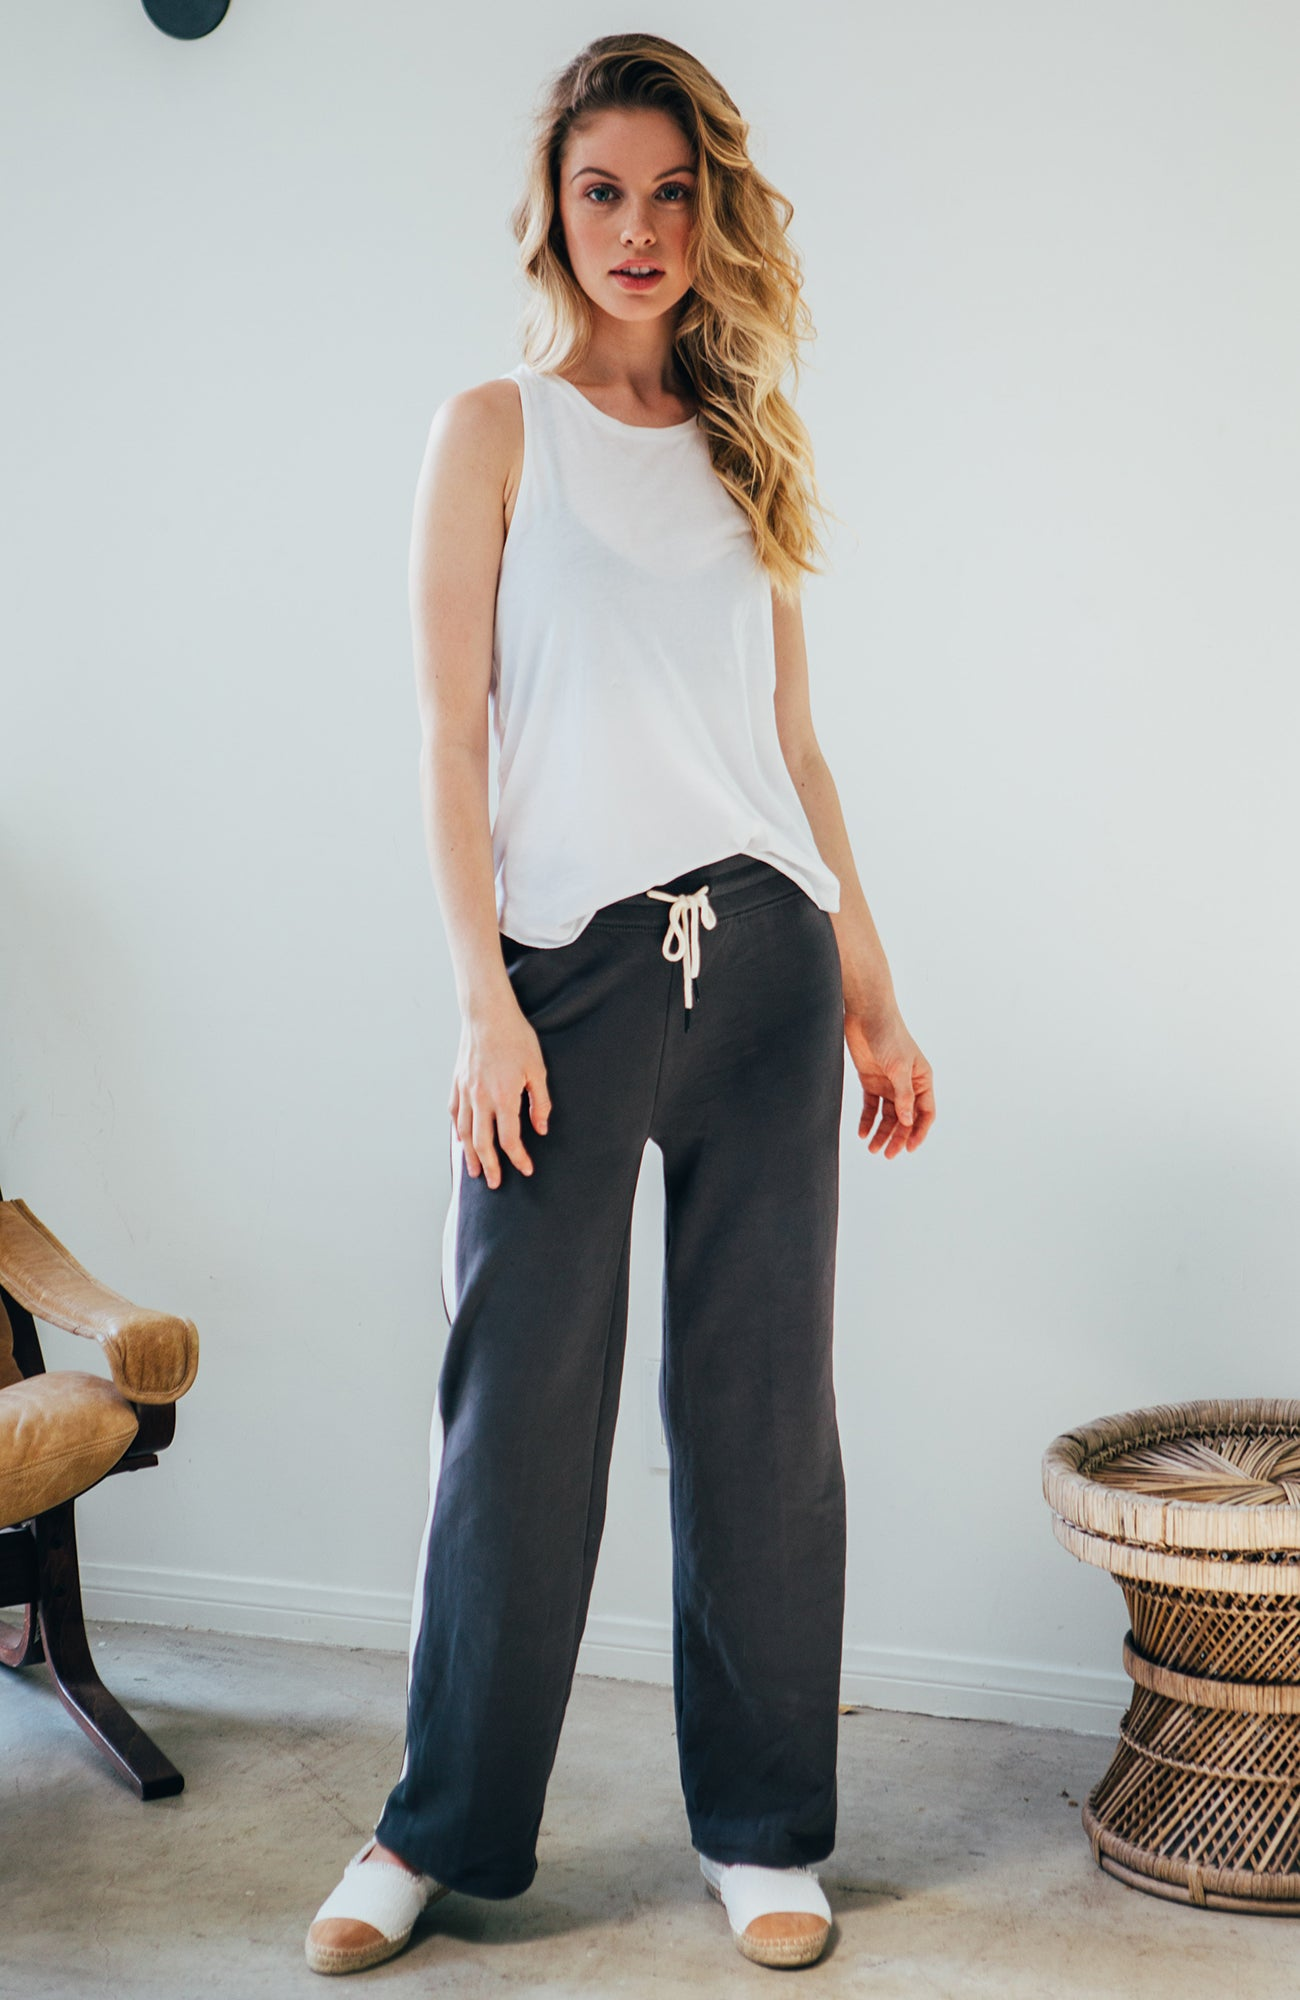 Colorblock Wide Leg Pants - Charcoal